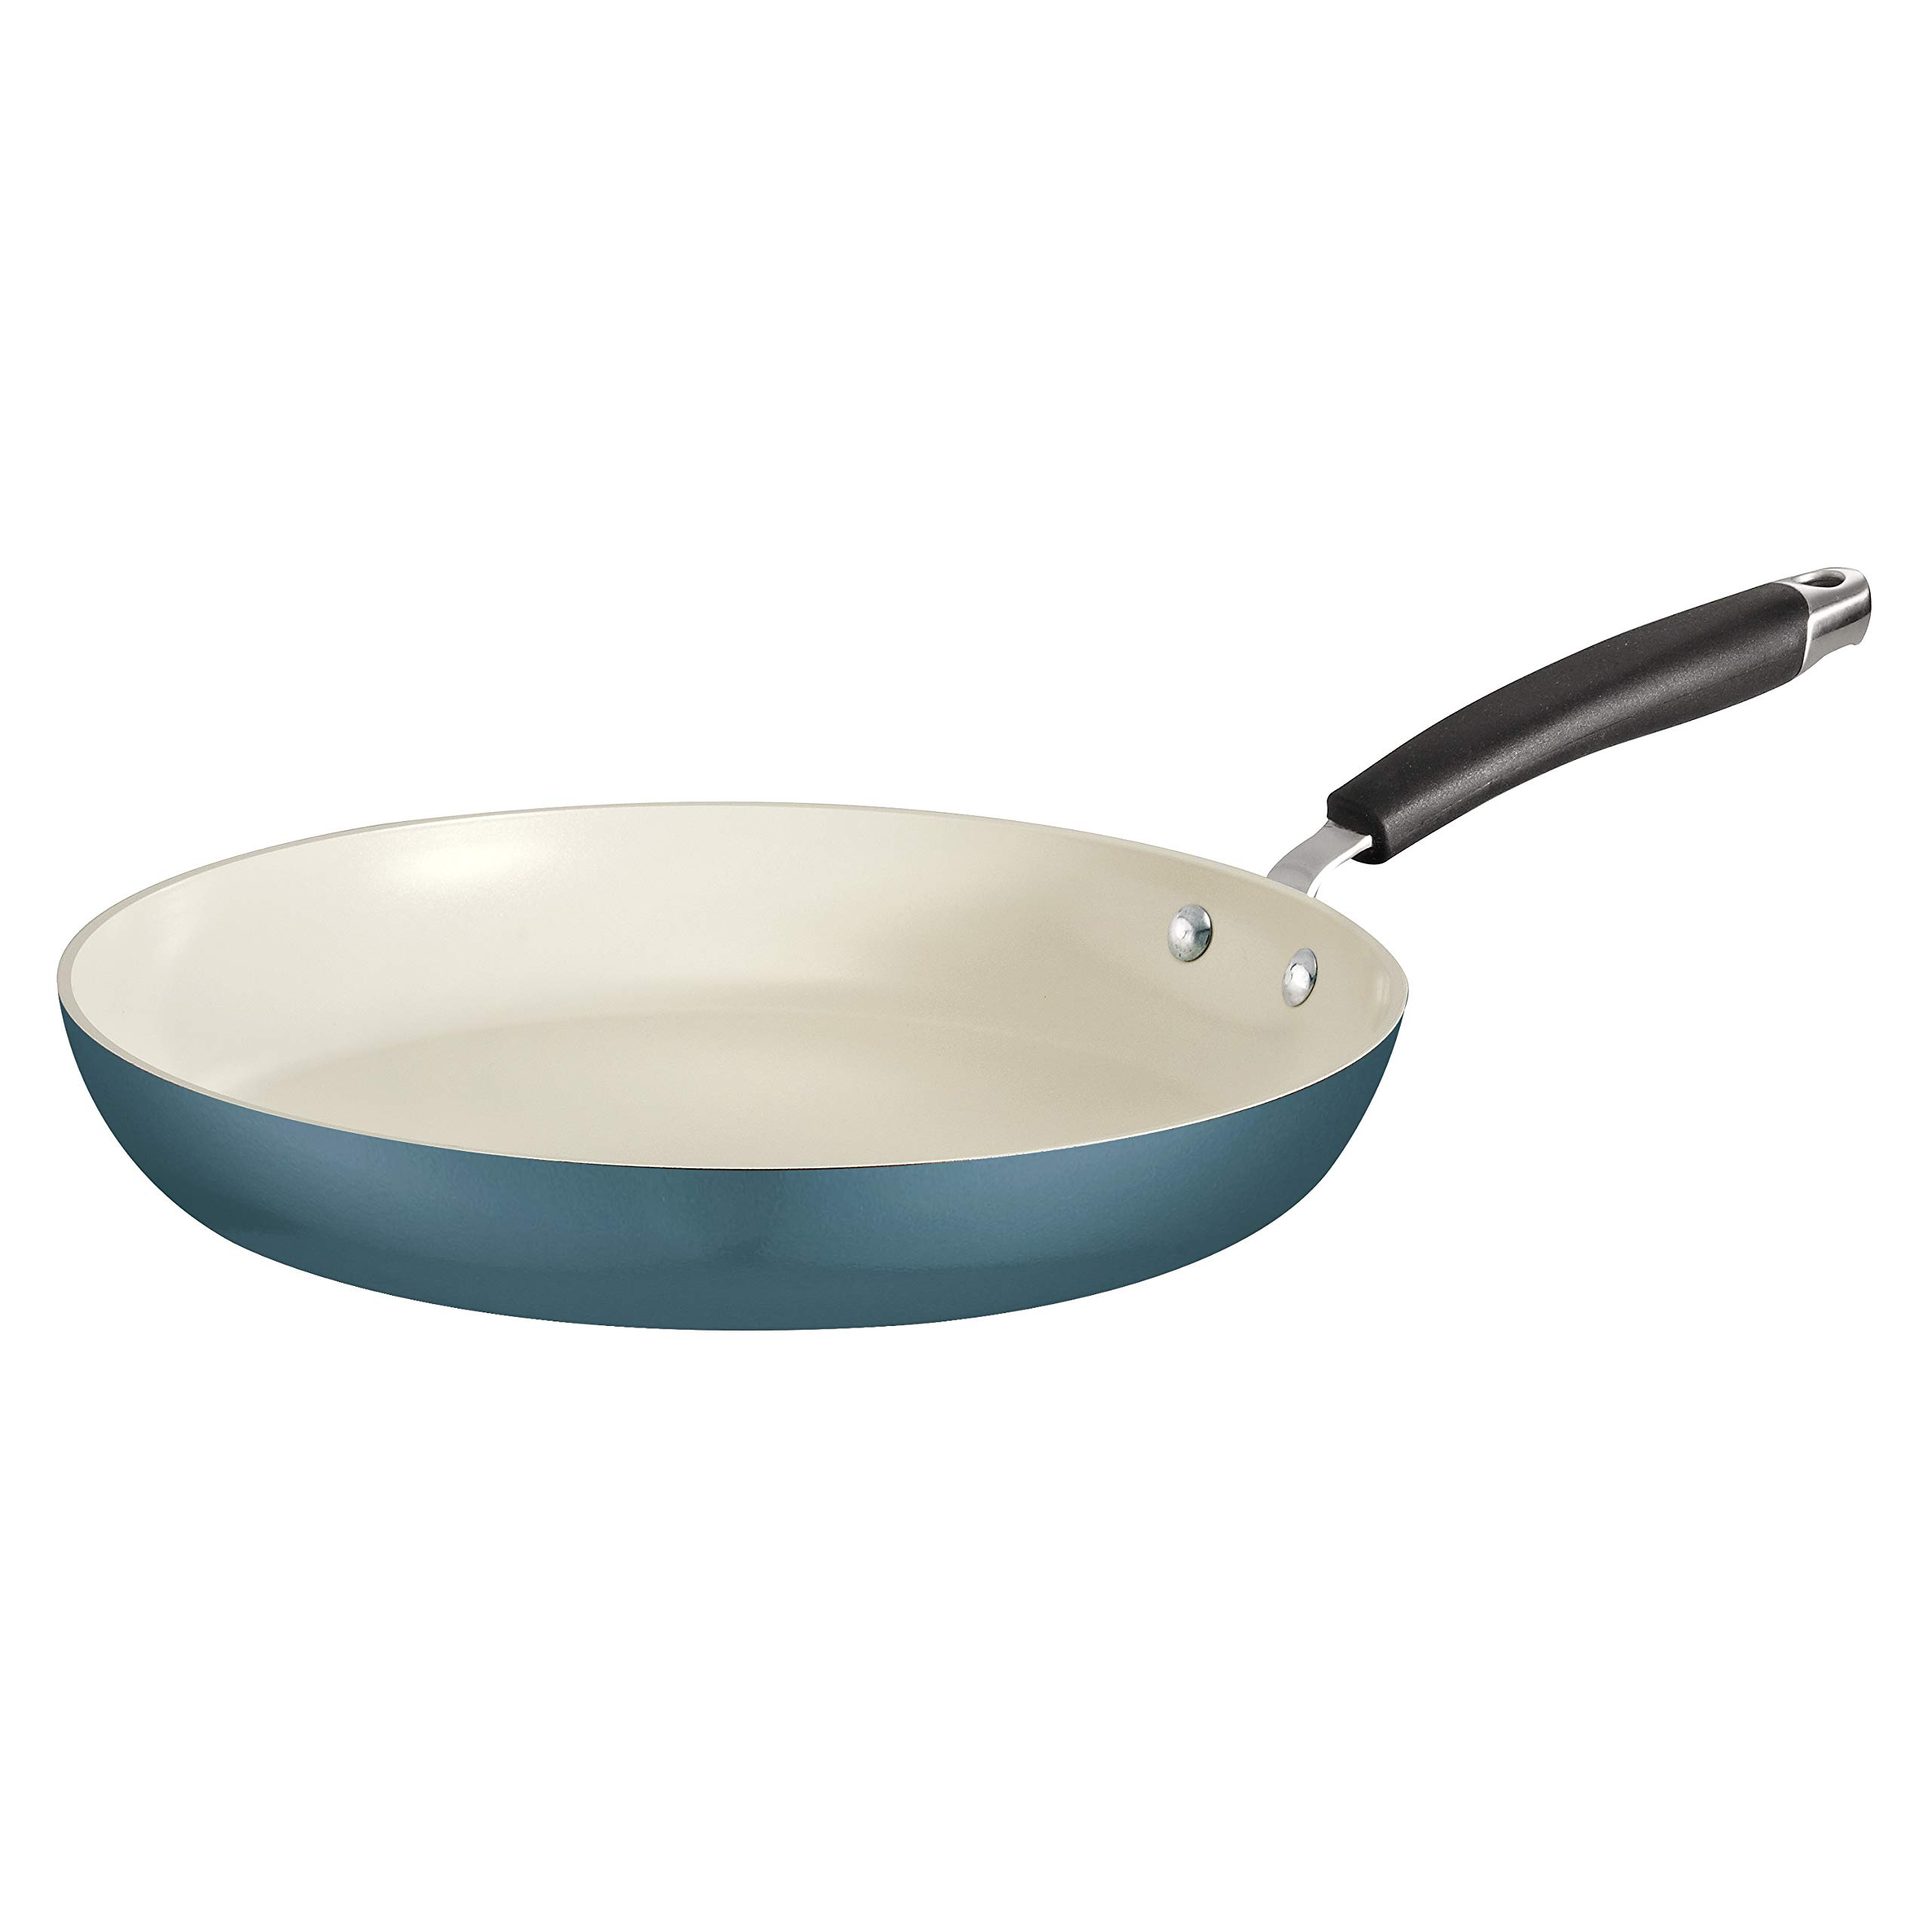 Tramontina 80110/074DS Style Ceramica Fry Pan, 12-inch, Mediterranean Blue, Made in Italy